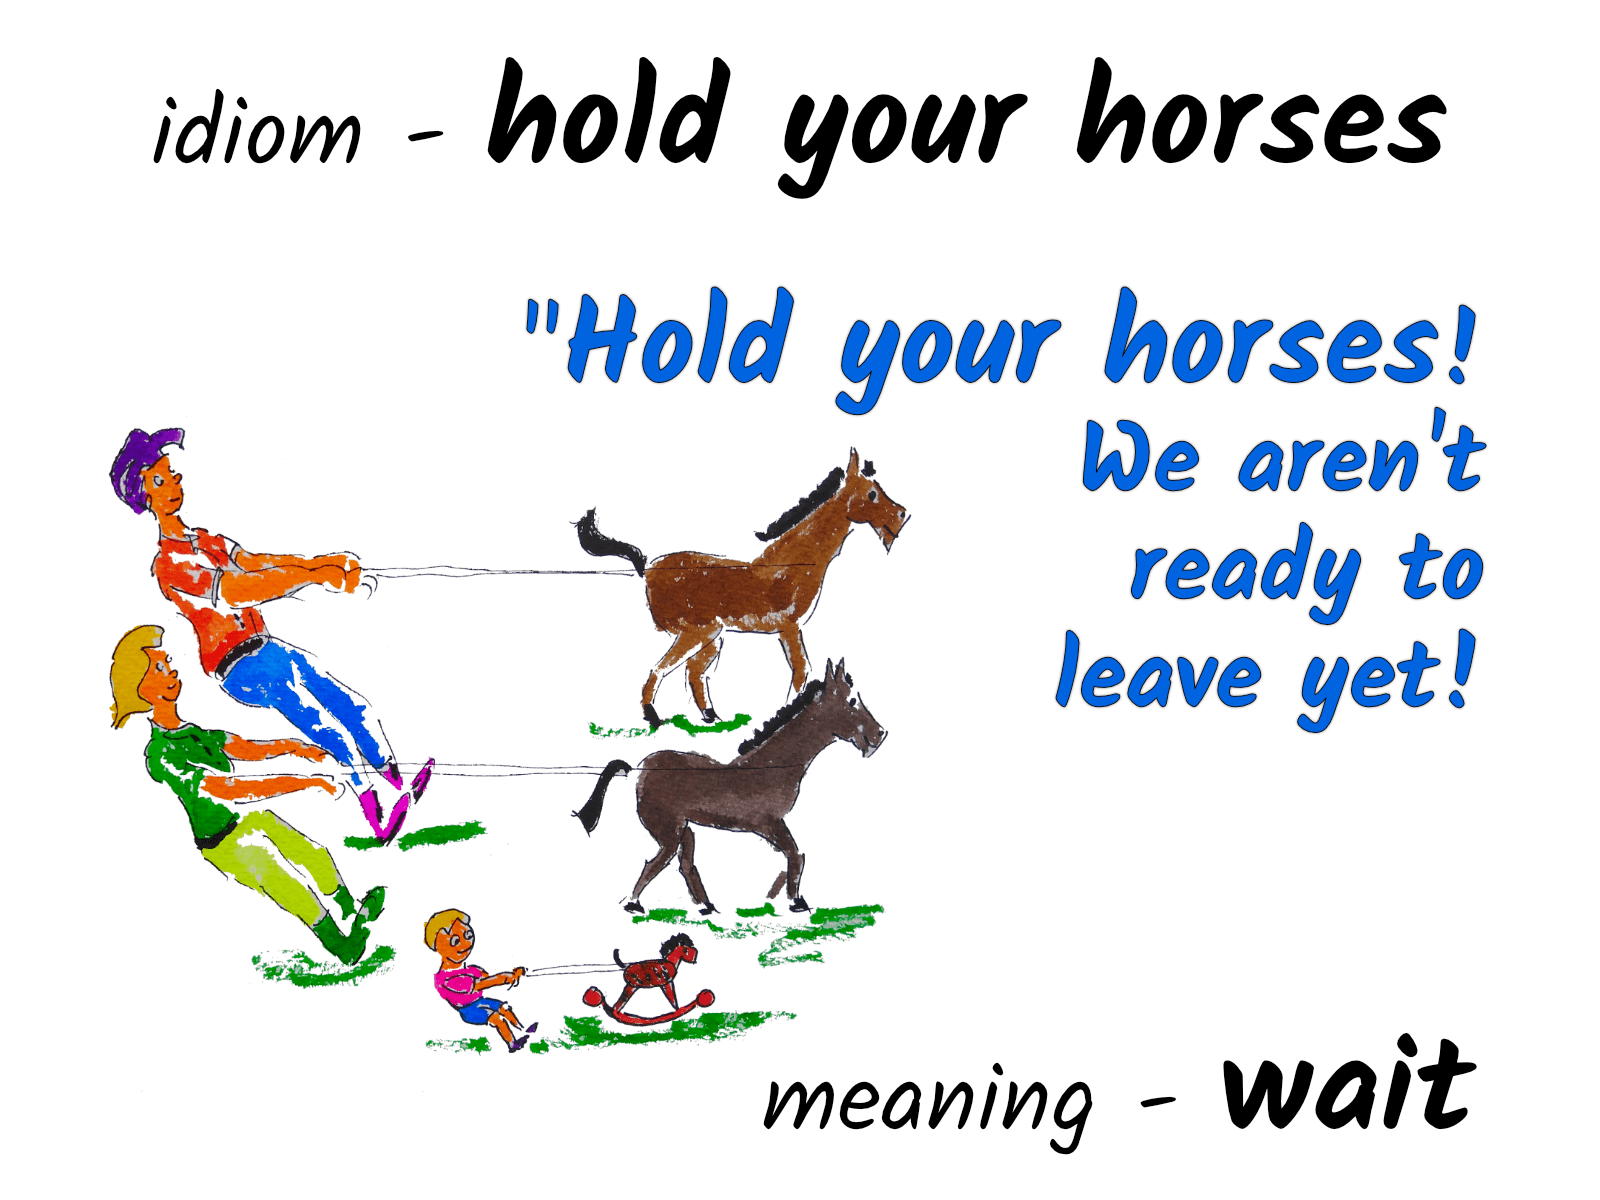 idiom-hold-your-horses